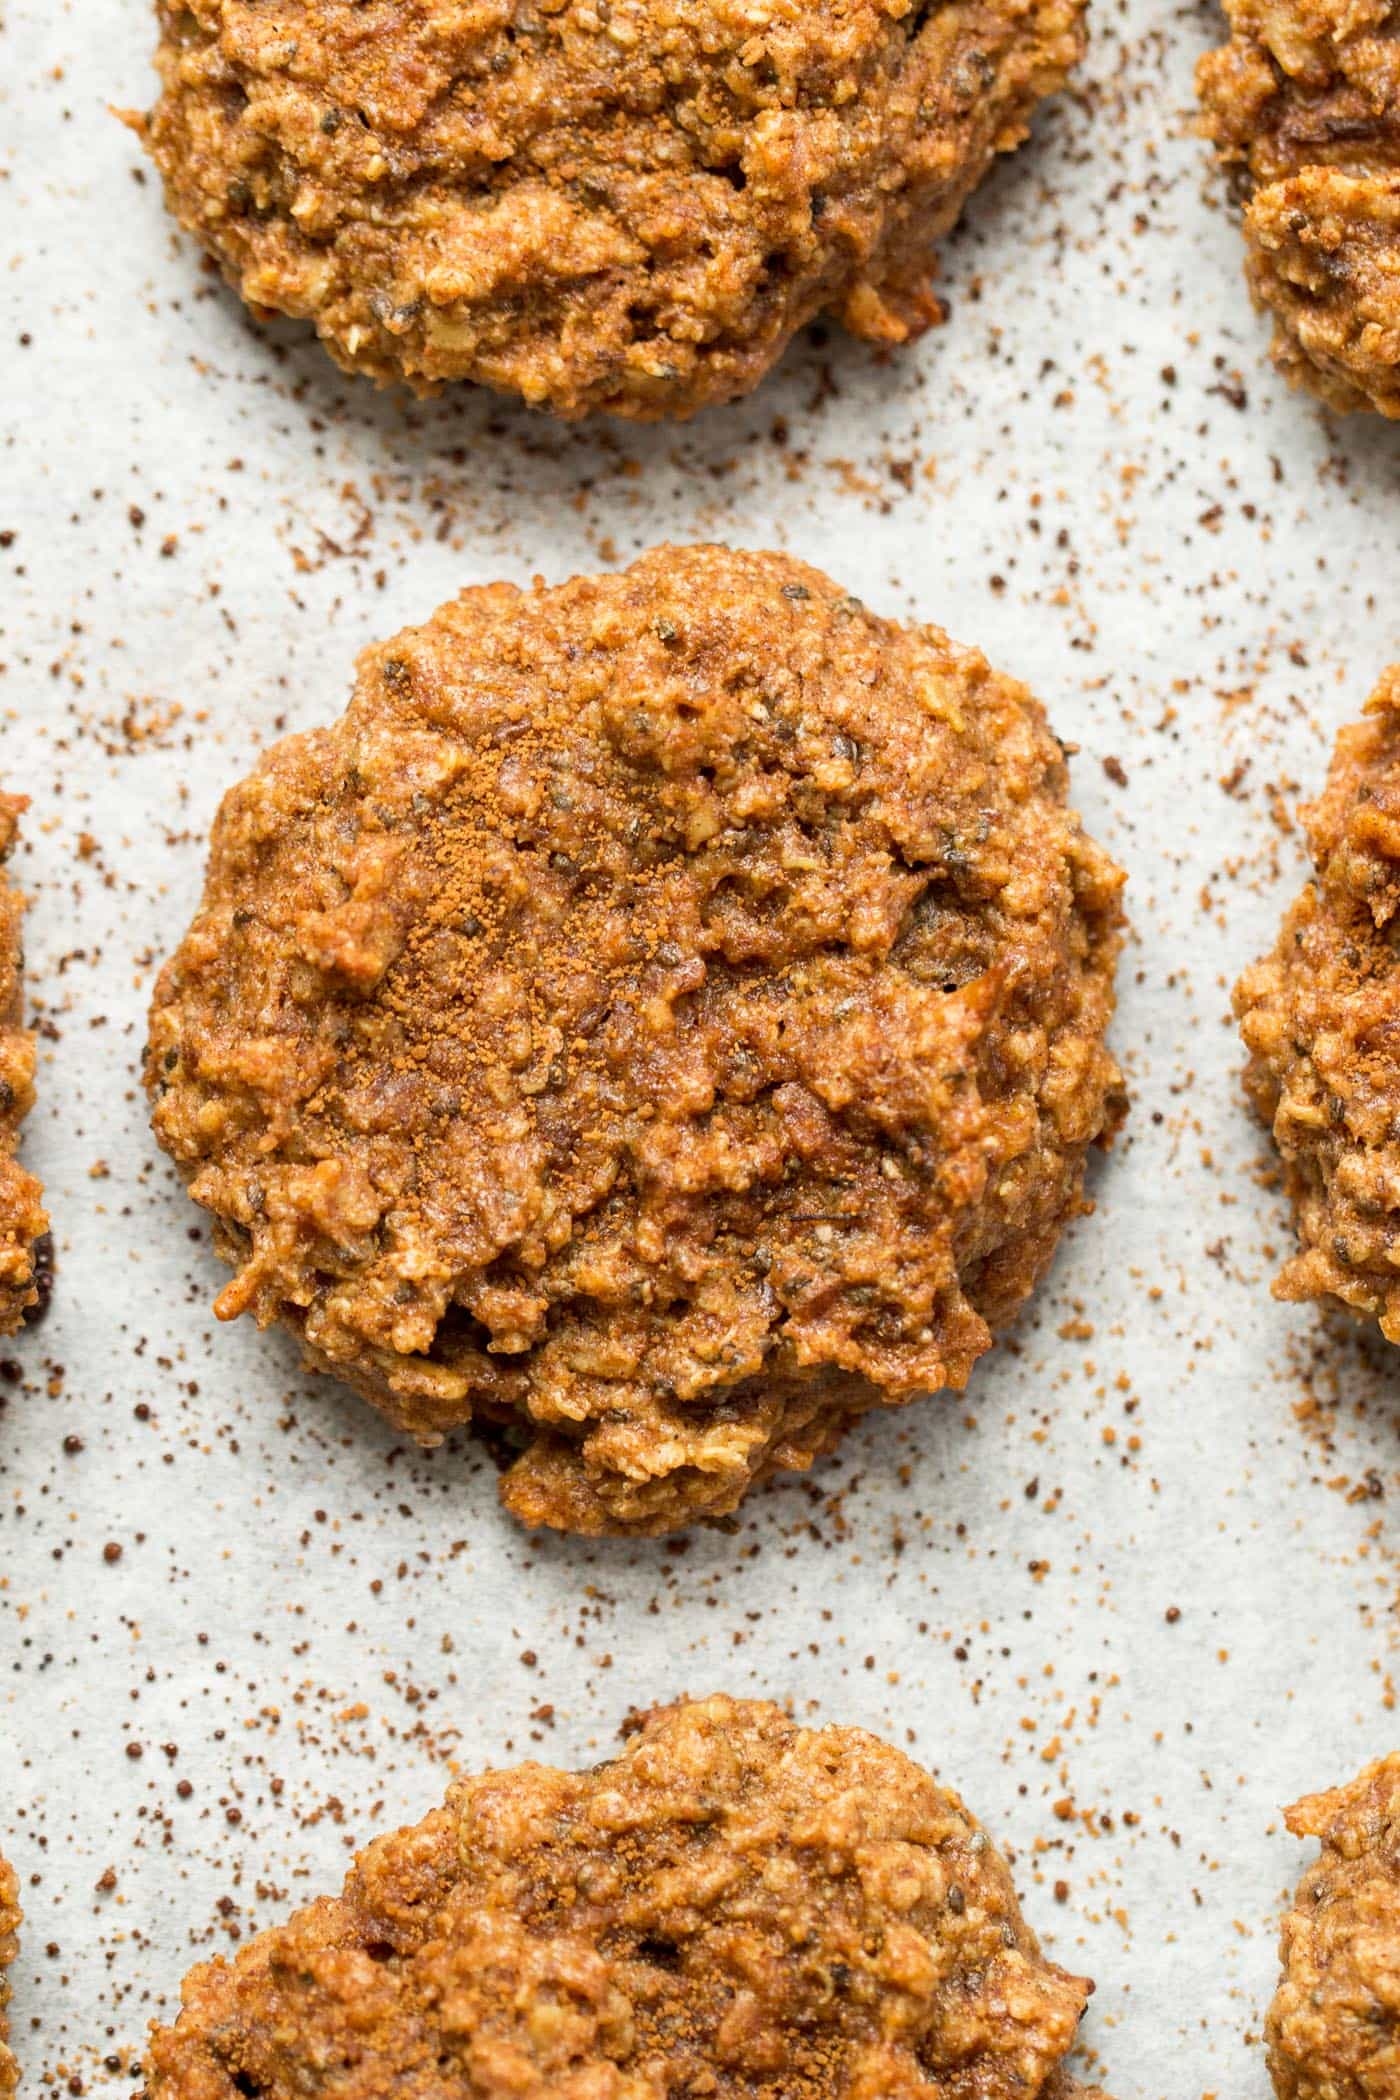 These HEALTHY Snickerdoodle Quinoa Breakfast Cookies are packed with cinnamon-sugary flavor, but are nutritious and perfect for breakfast!